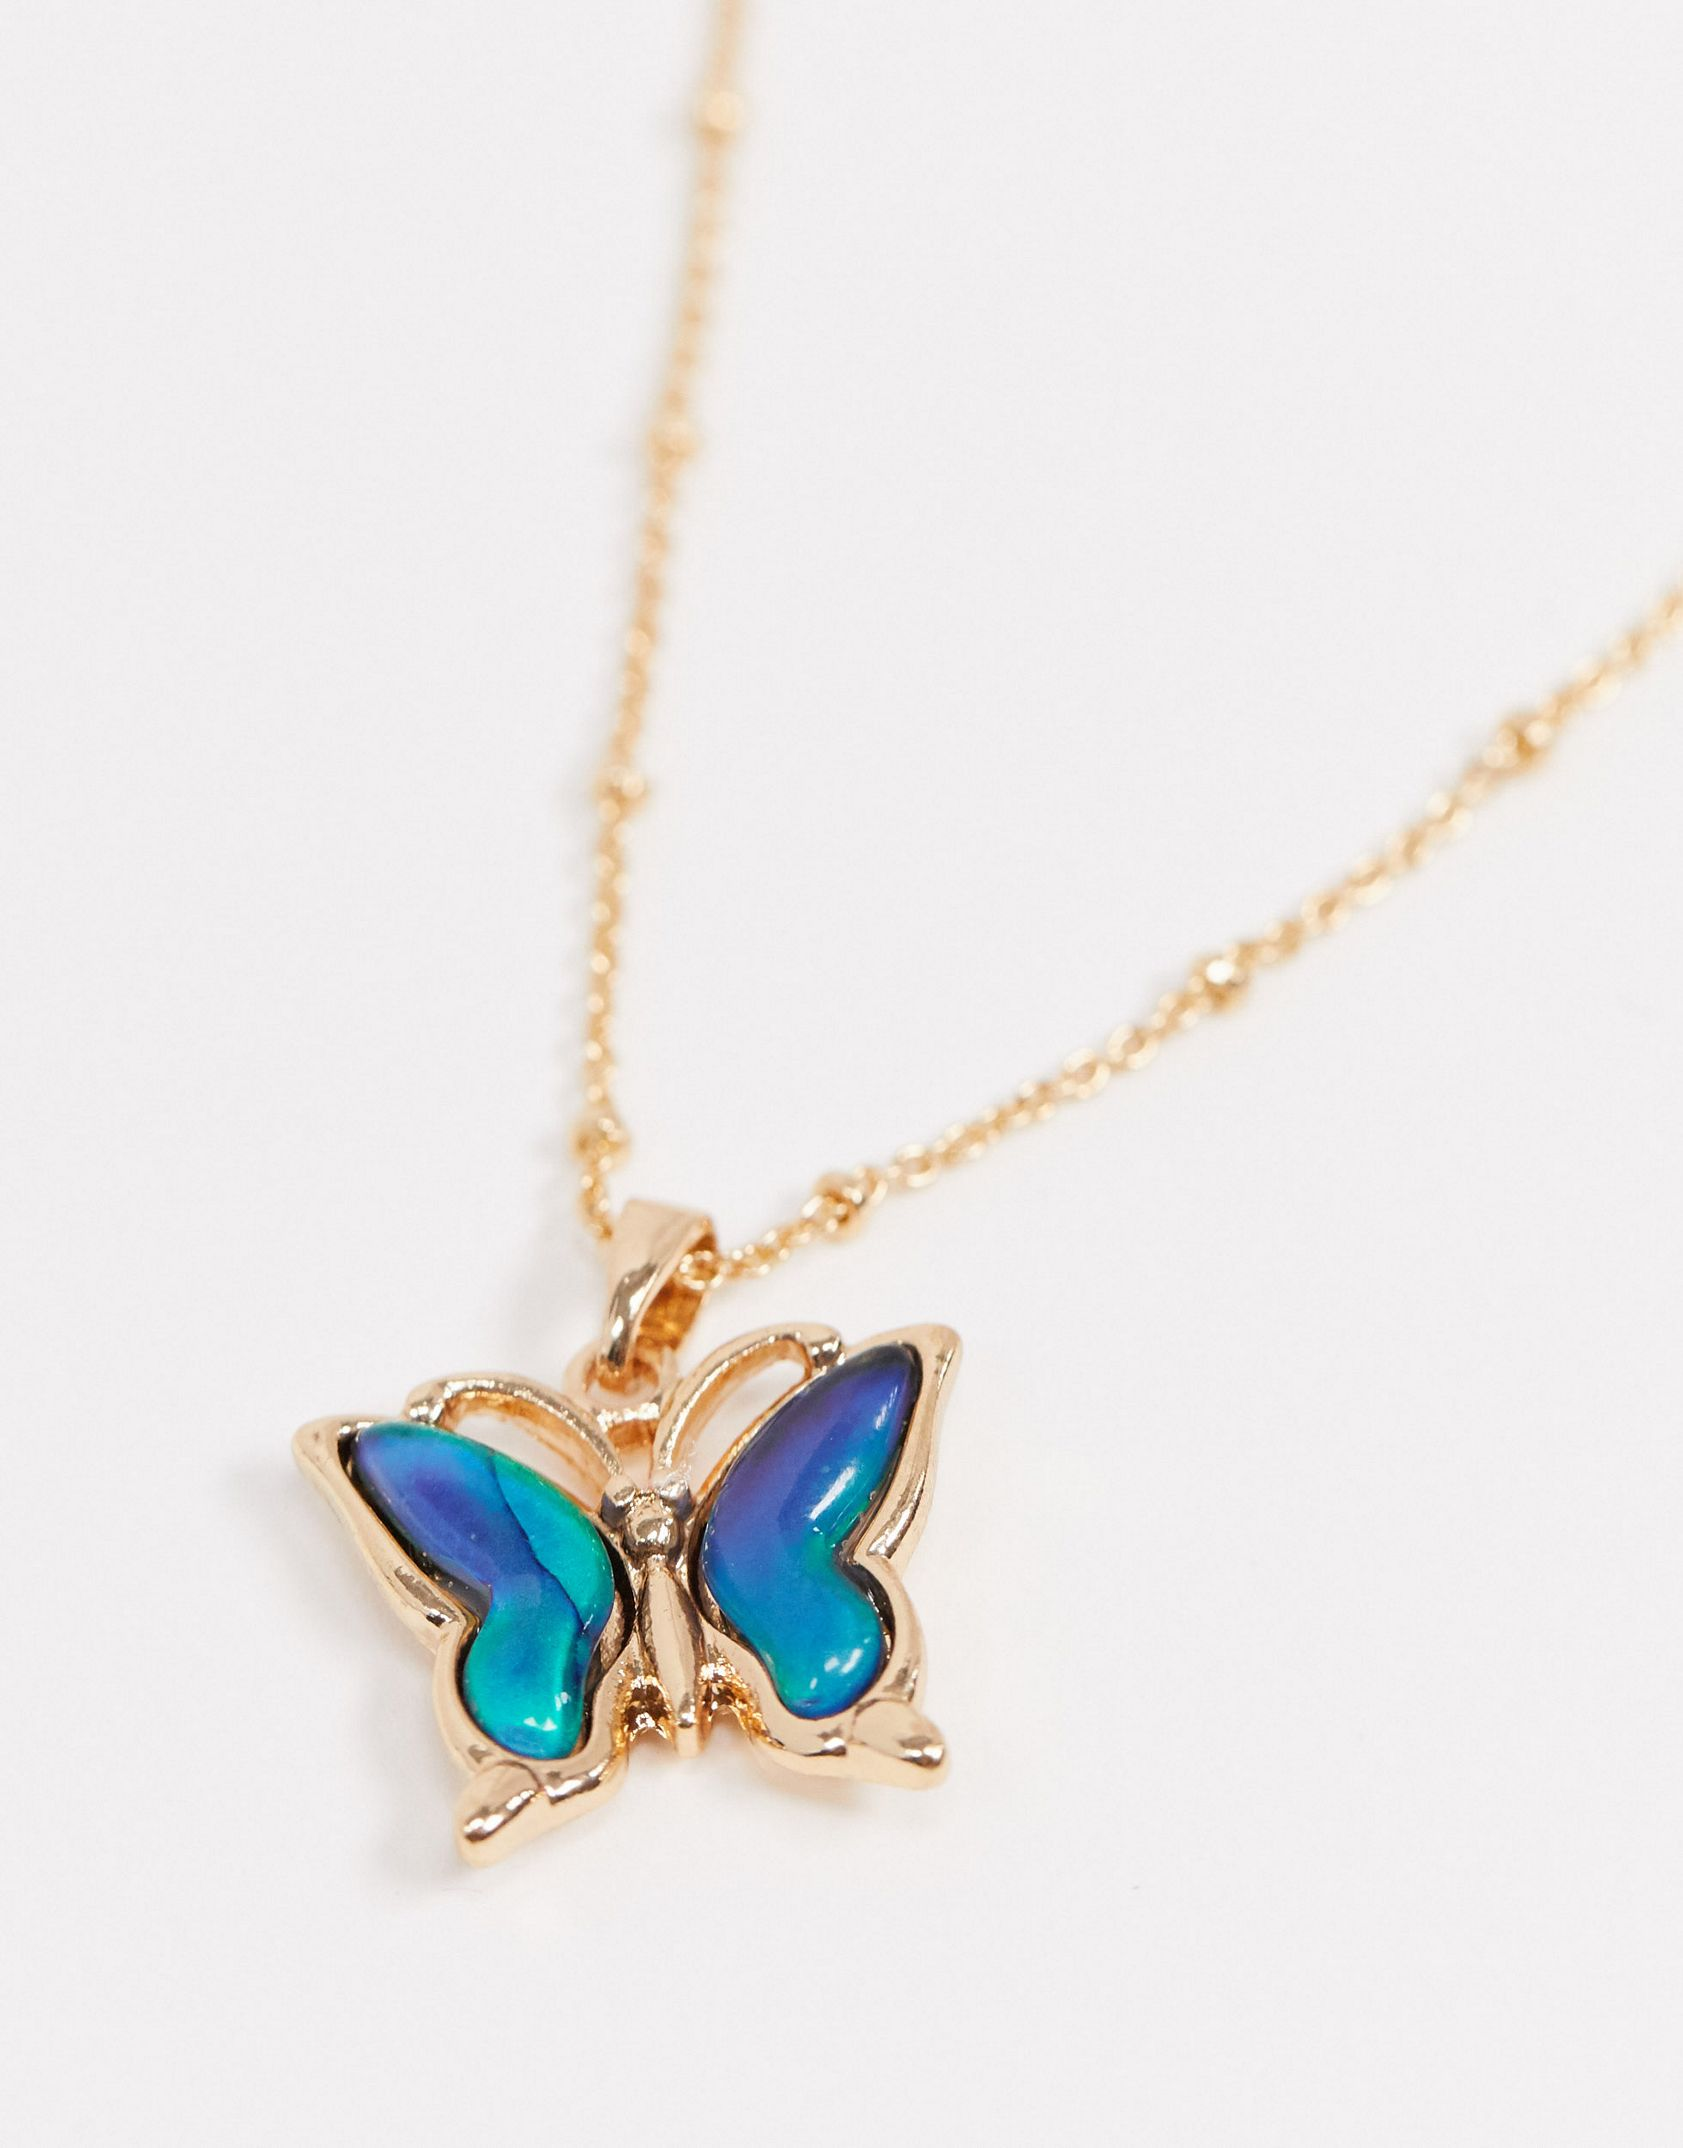 ASOS DESIGN necklace with mood butterfly pendant in gold tone - ASOS Price Checker